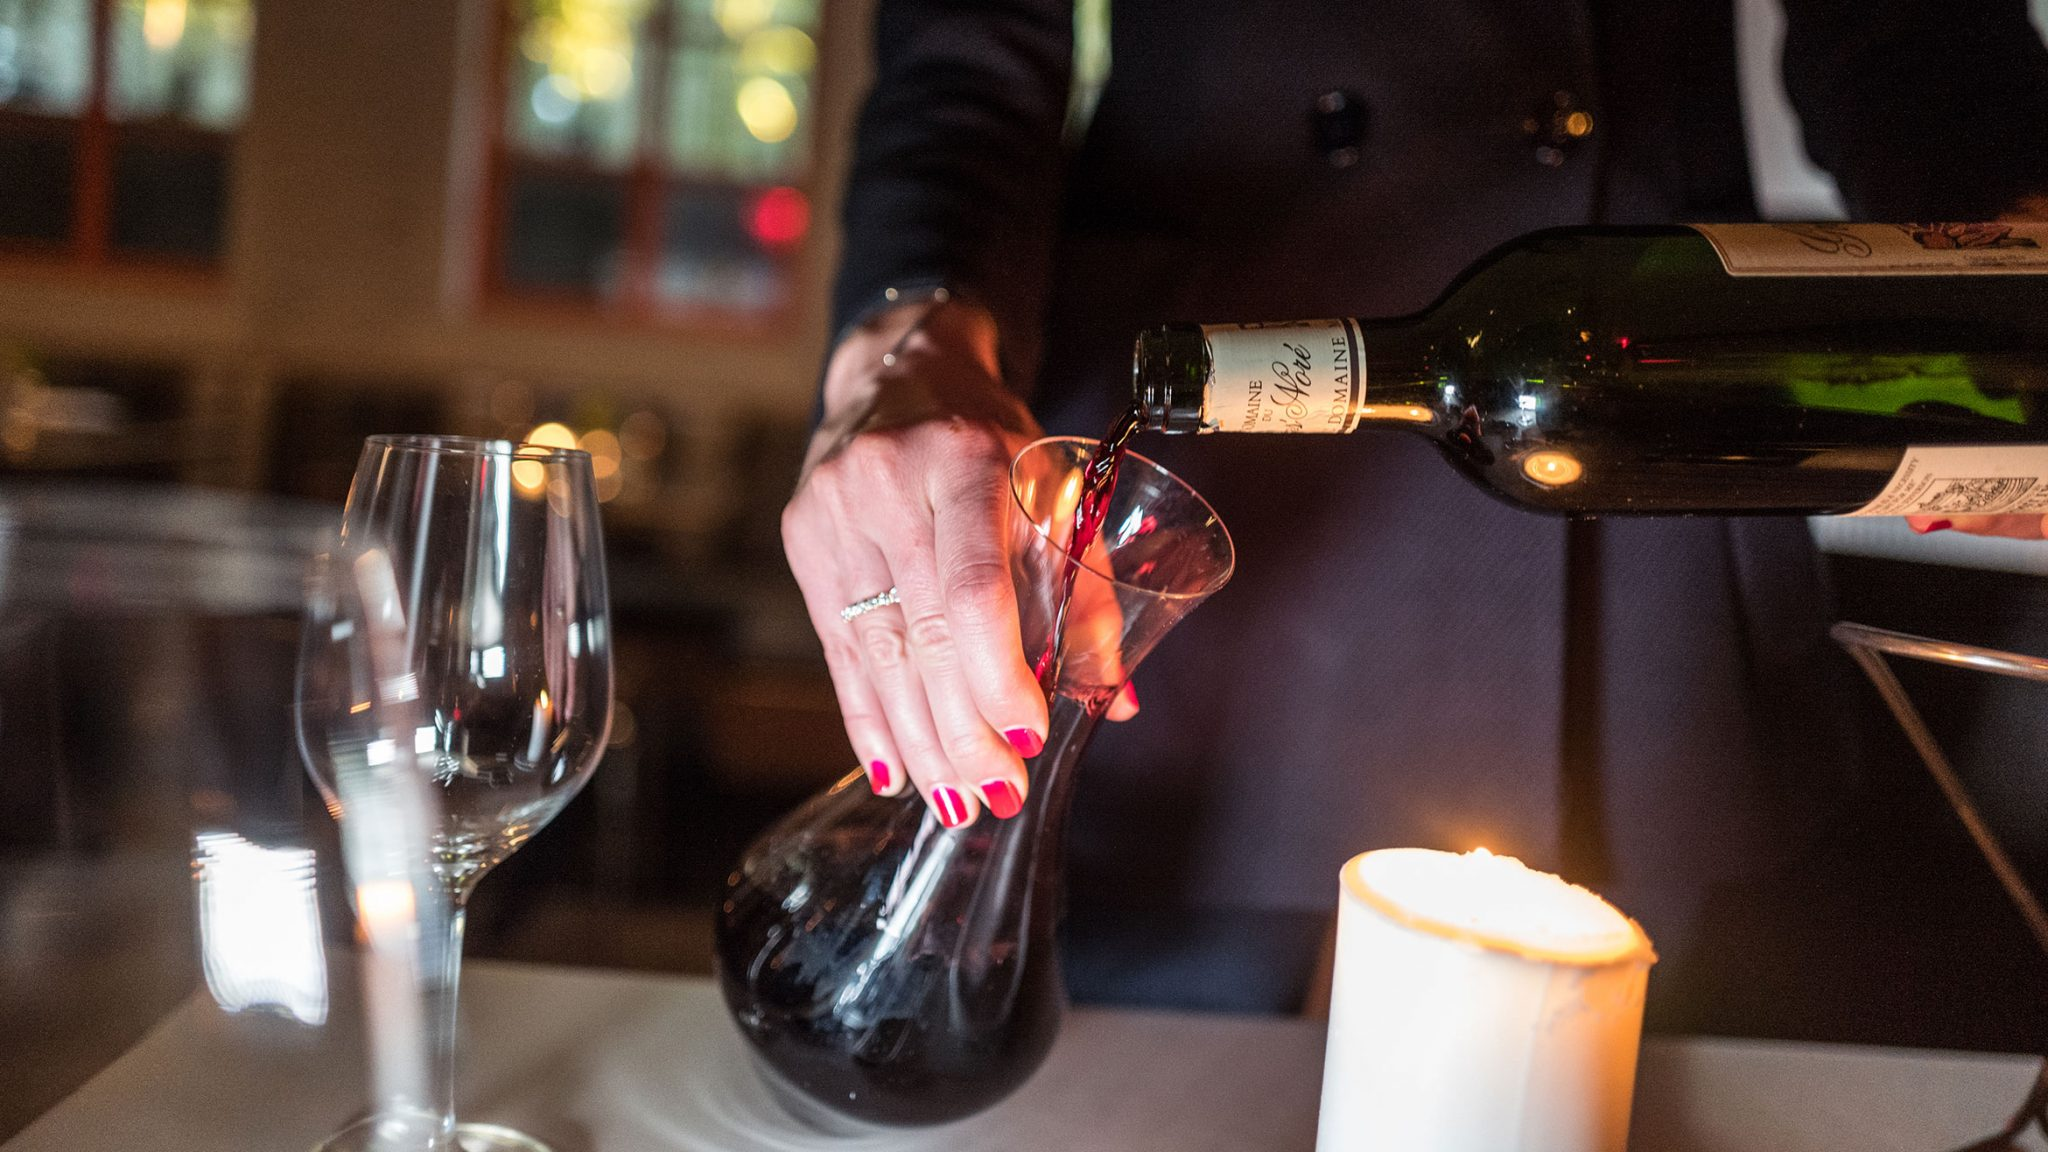 The unsung heroes of wine service